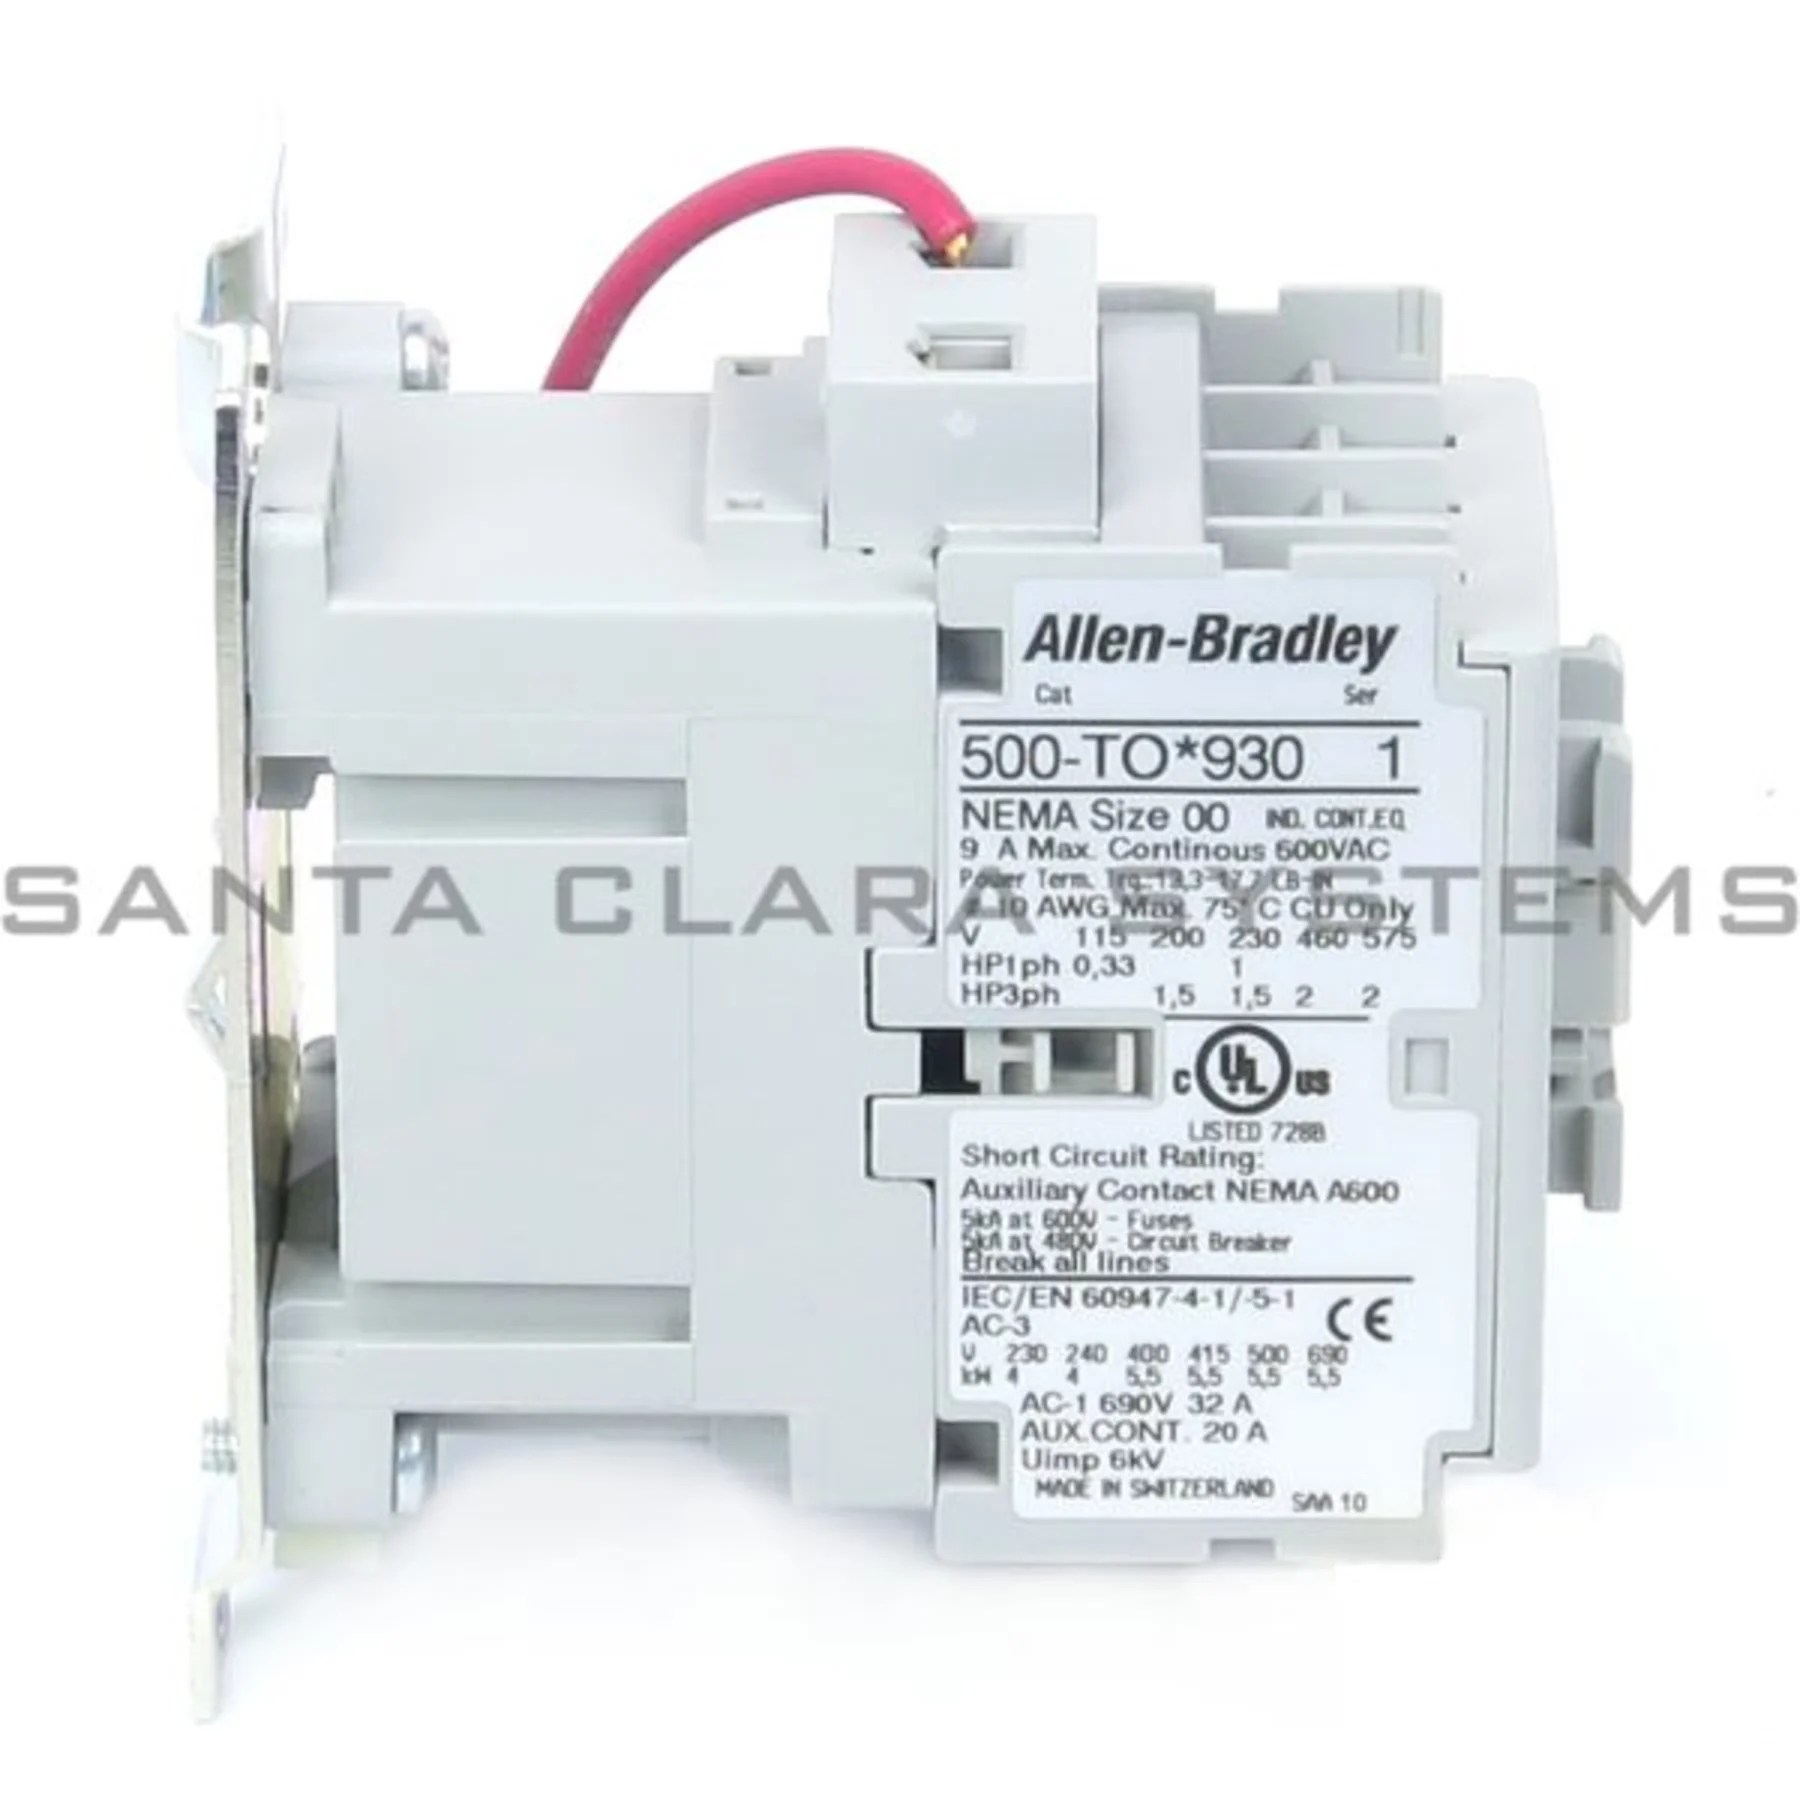 hight resolution of allen bradley 500 tod930 contactor product image